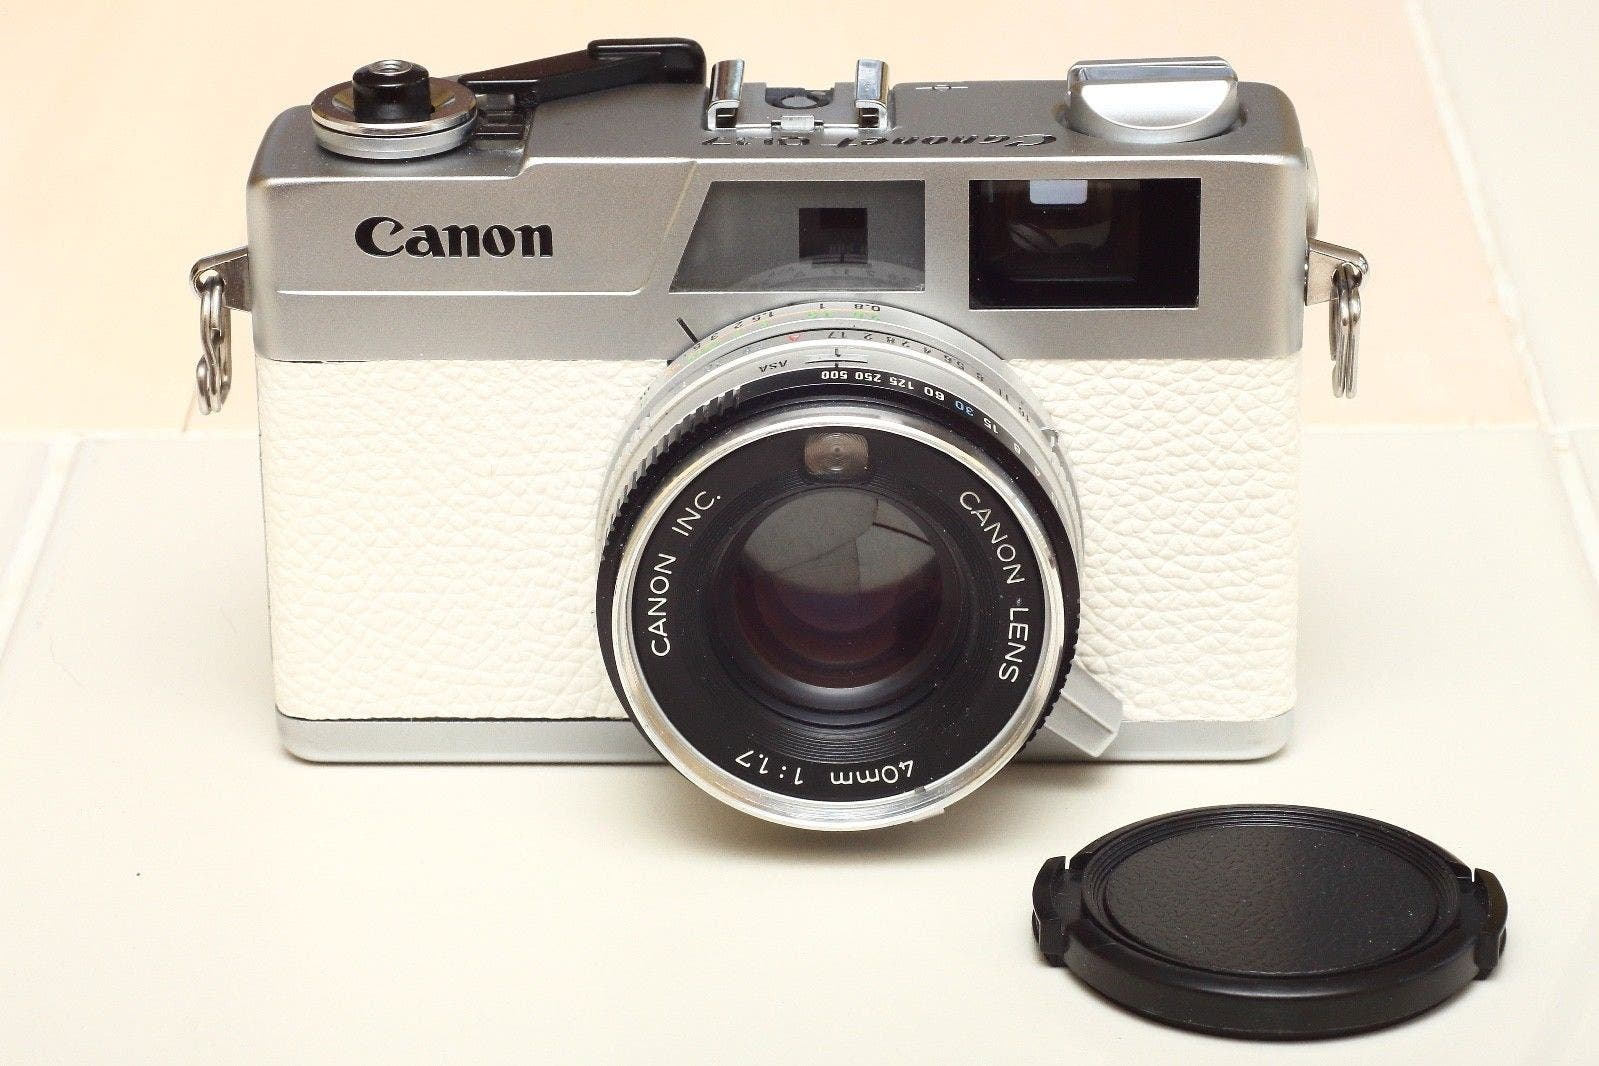 The Canonet G-III QL-17 in Gorgeous White Leather Will Make You Drool